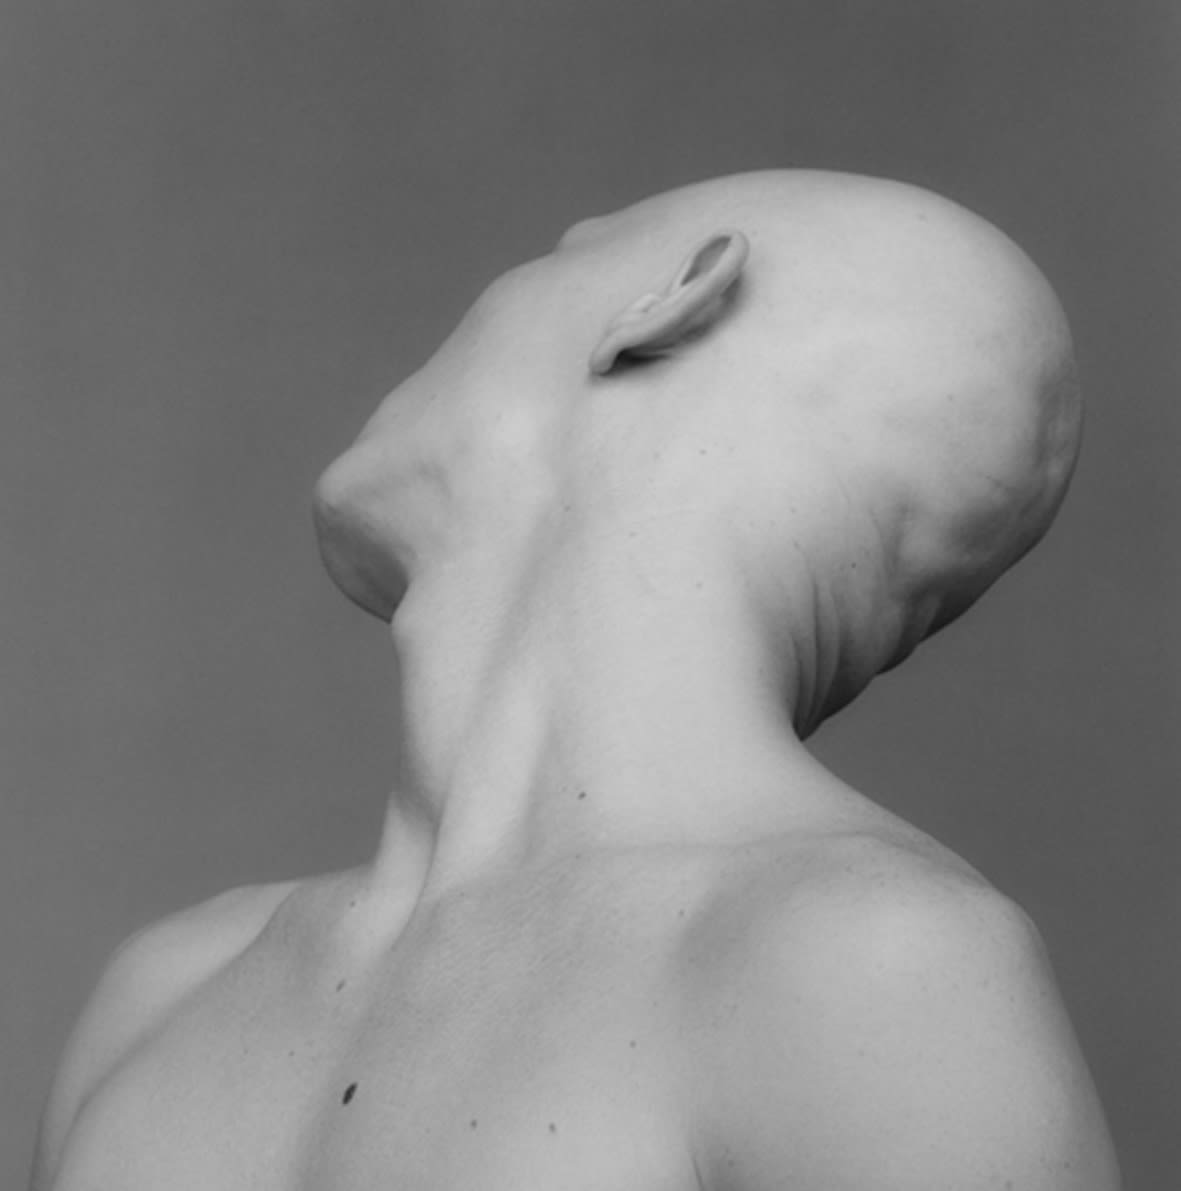 """<span class=""""link fancybox-details-link""""><a href=""""/exhibitions/120/works/artworks7751/"""">View Detail Page</a></span><div class=""""artist""""><strong> Robert Mapplethorpe</strong></div><div class=""""title""""><em>Robert Sherman</em>, 1983 / printed 1993</div><div class=""""signed_and_dated"""">unsigned</div><div class=""""medium"""">gelatin silver print</div><div class=""""dimensions"""">image: 39.10 x 38.50 cm<br>framed: 62.2 x 59.5 cm</div><div class=""""edition_details""""></div>"""